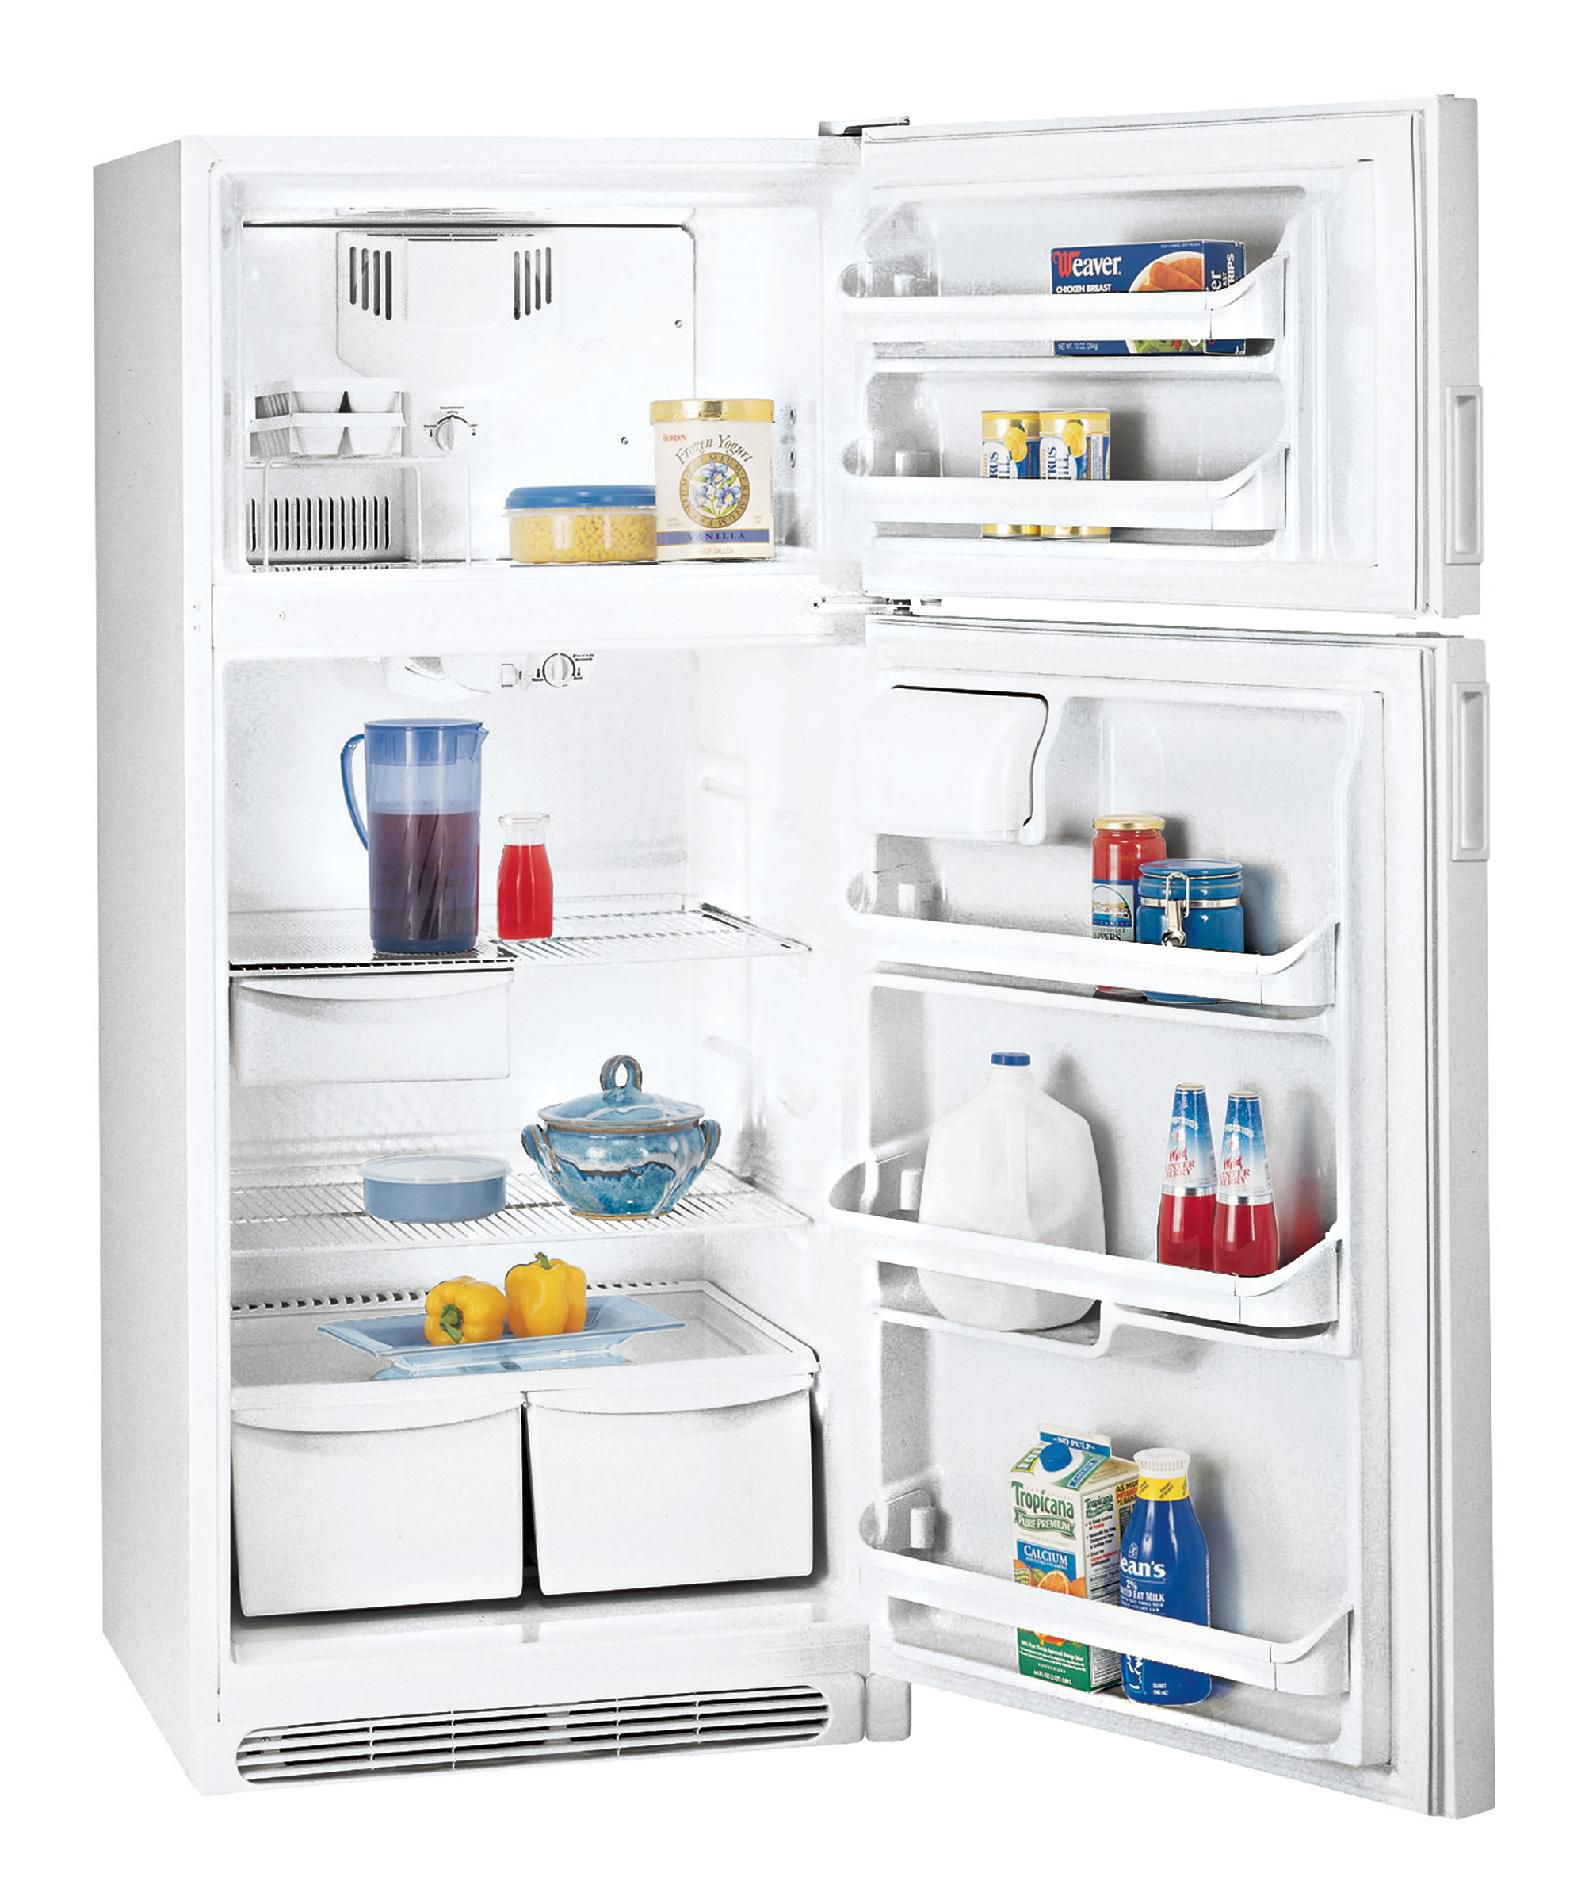 Kenmore 18.2 cu. ft. Top Freezer Refrigerator, Non-Ice